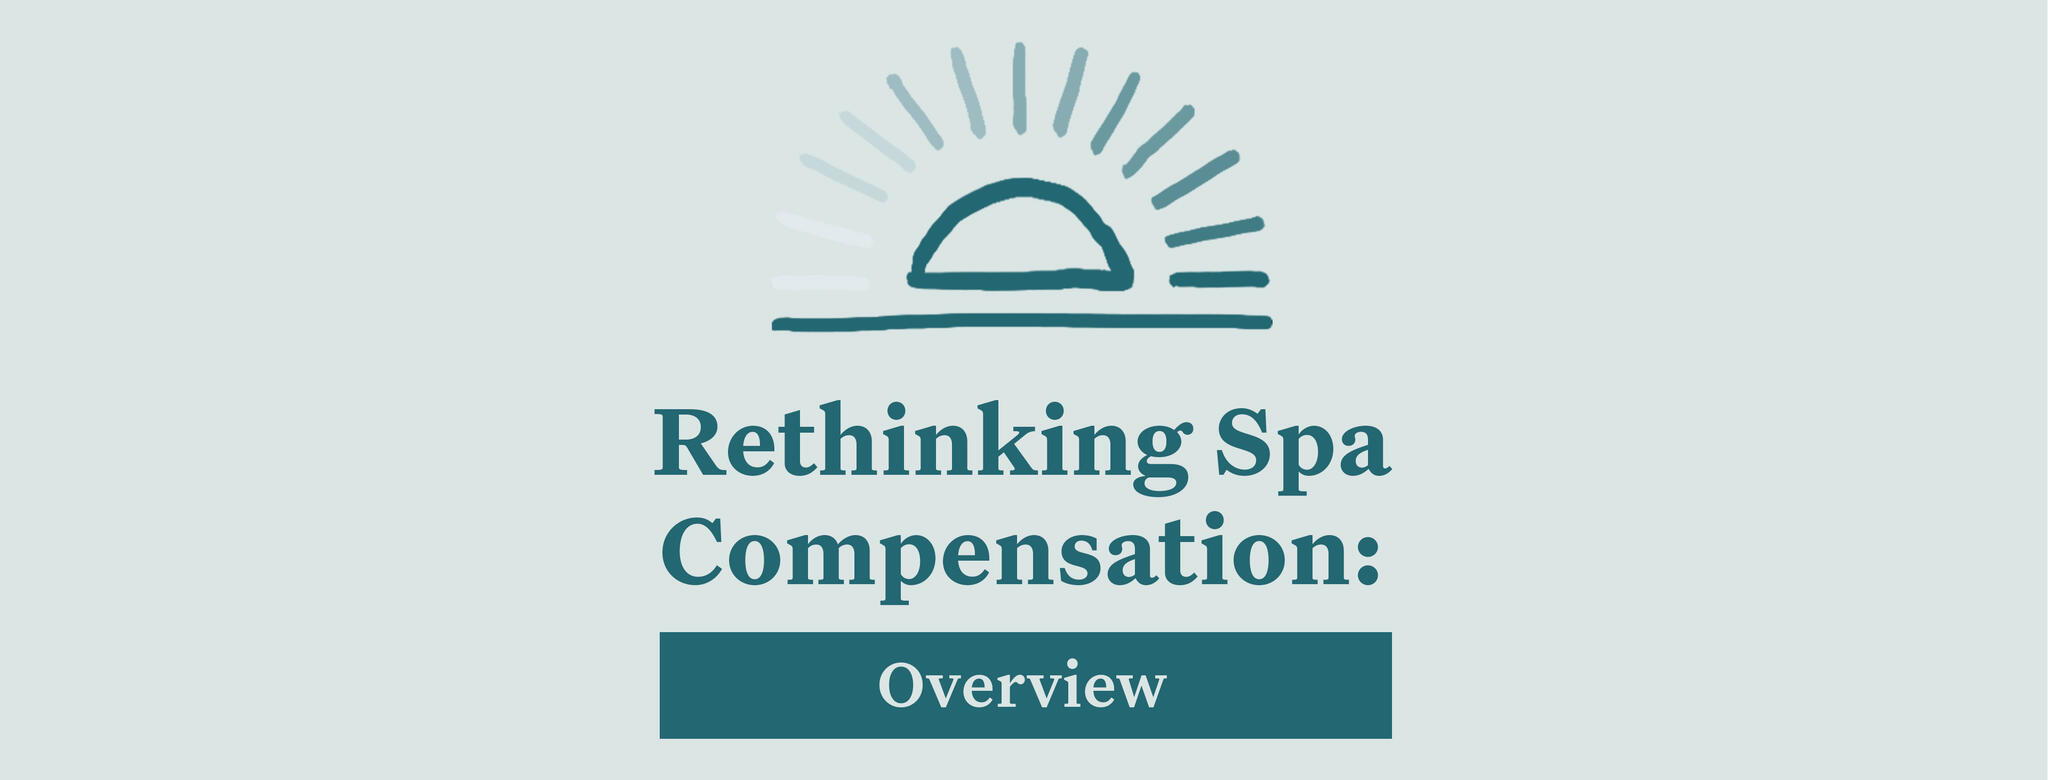 Rethinking Spa Compensation: Overview